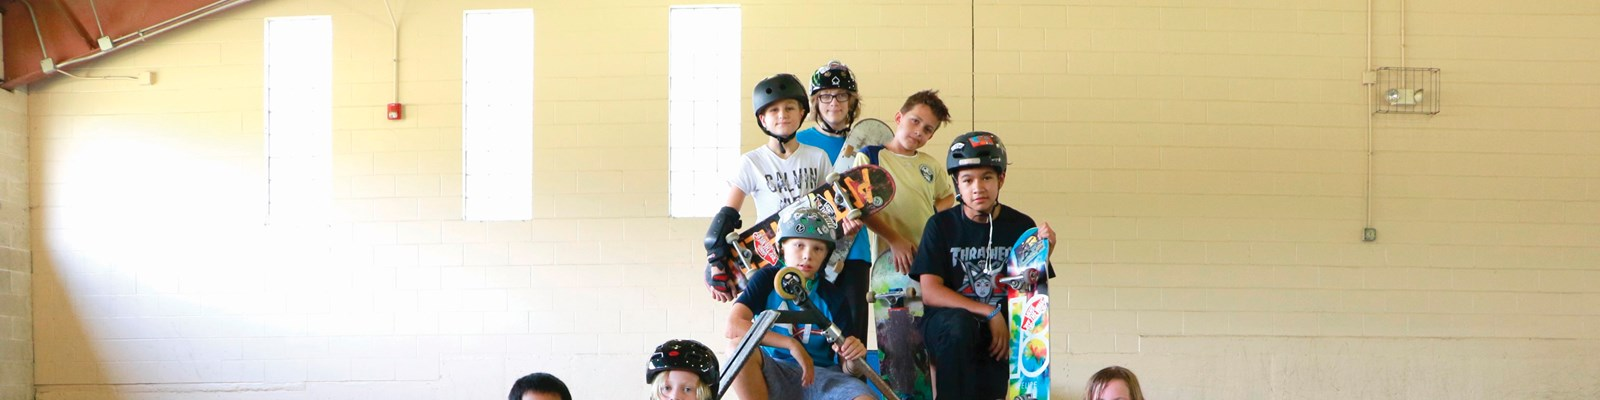 Skate Park Rentals, Land your next event at Audubon Indoor Skate Park